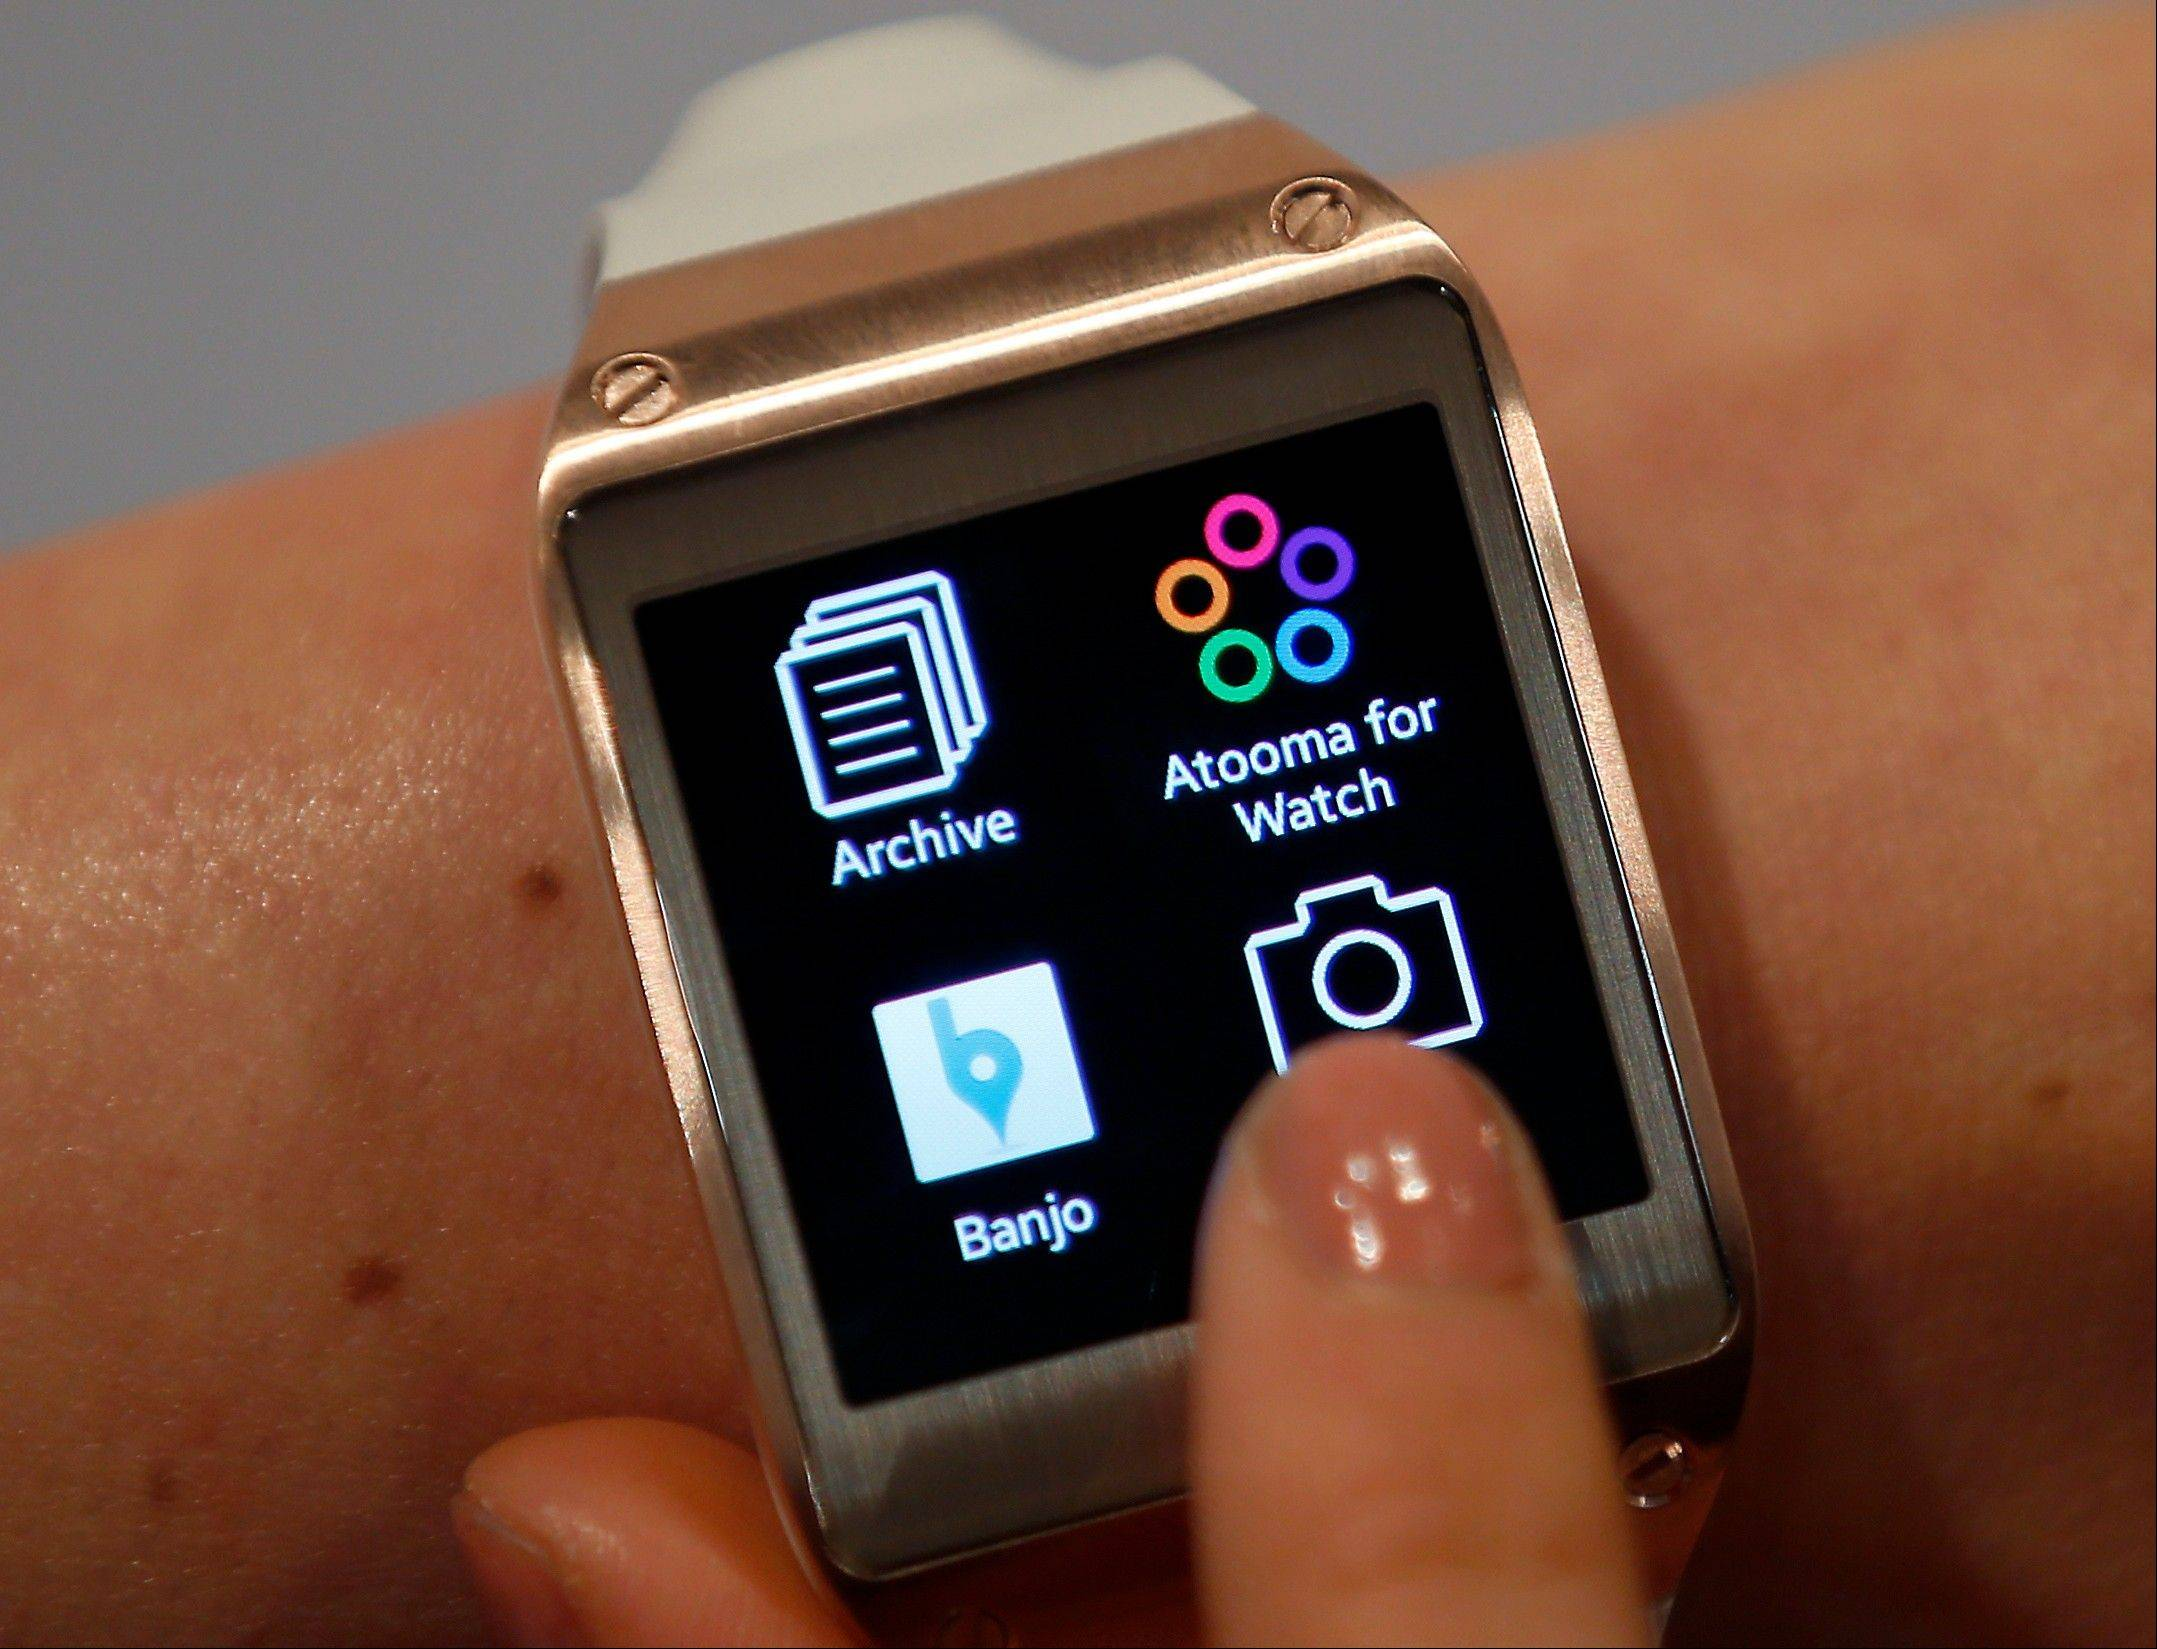 The Samsung Galaxy Gear smartwatch is what some technology analysts believe could become this year's must-have holiday gift.